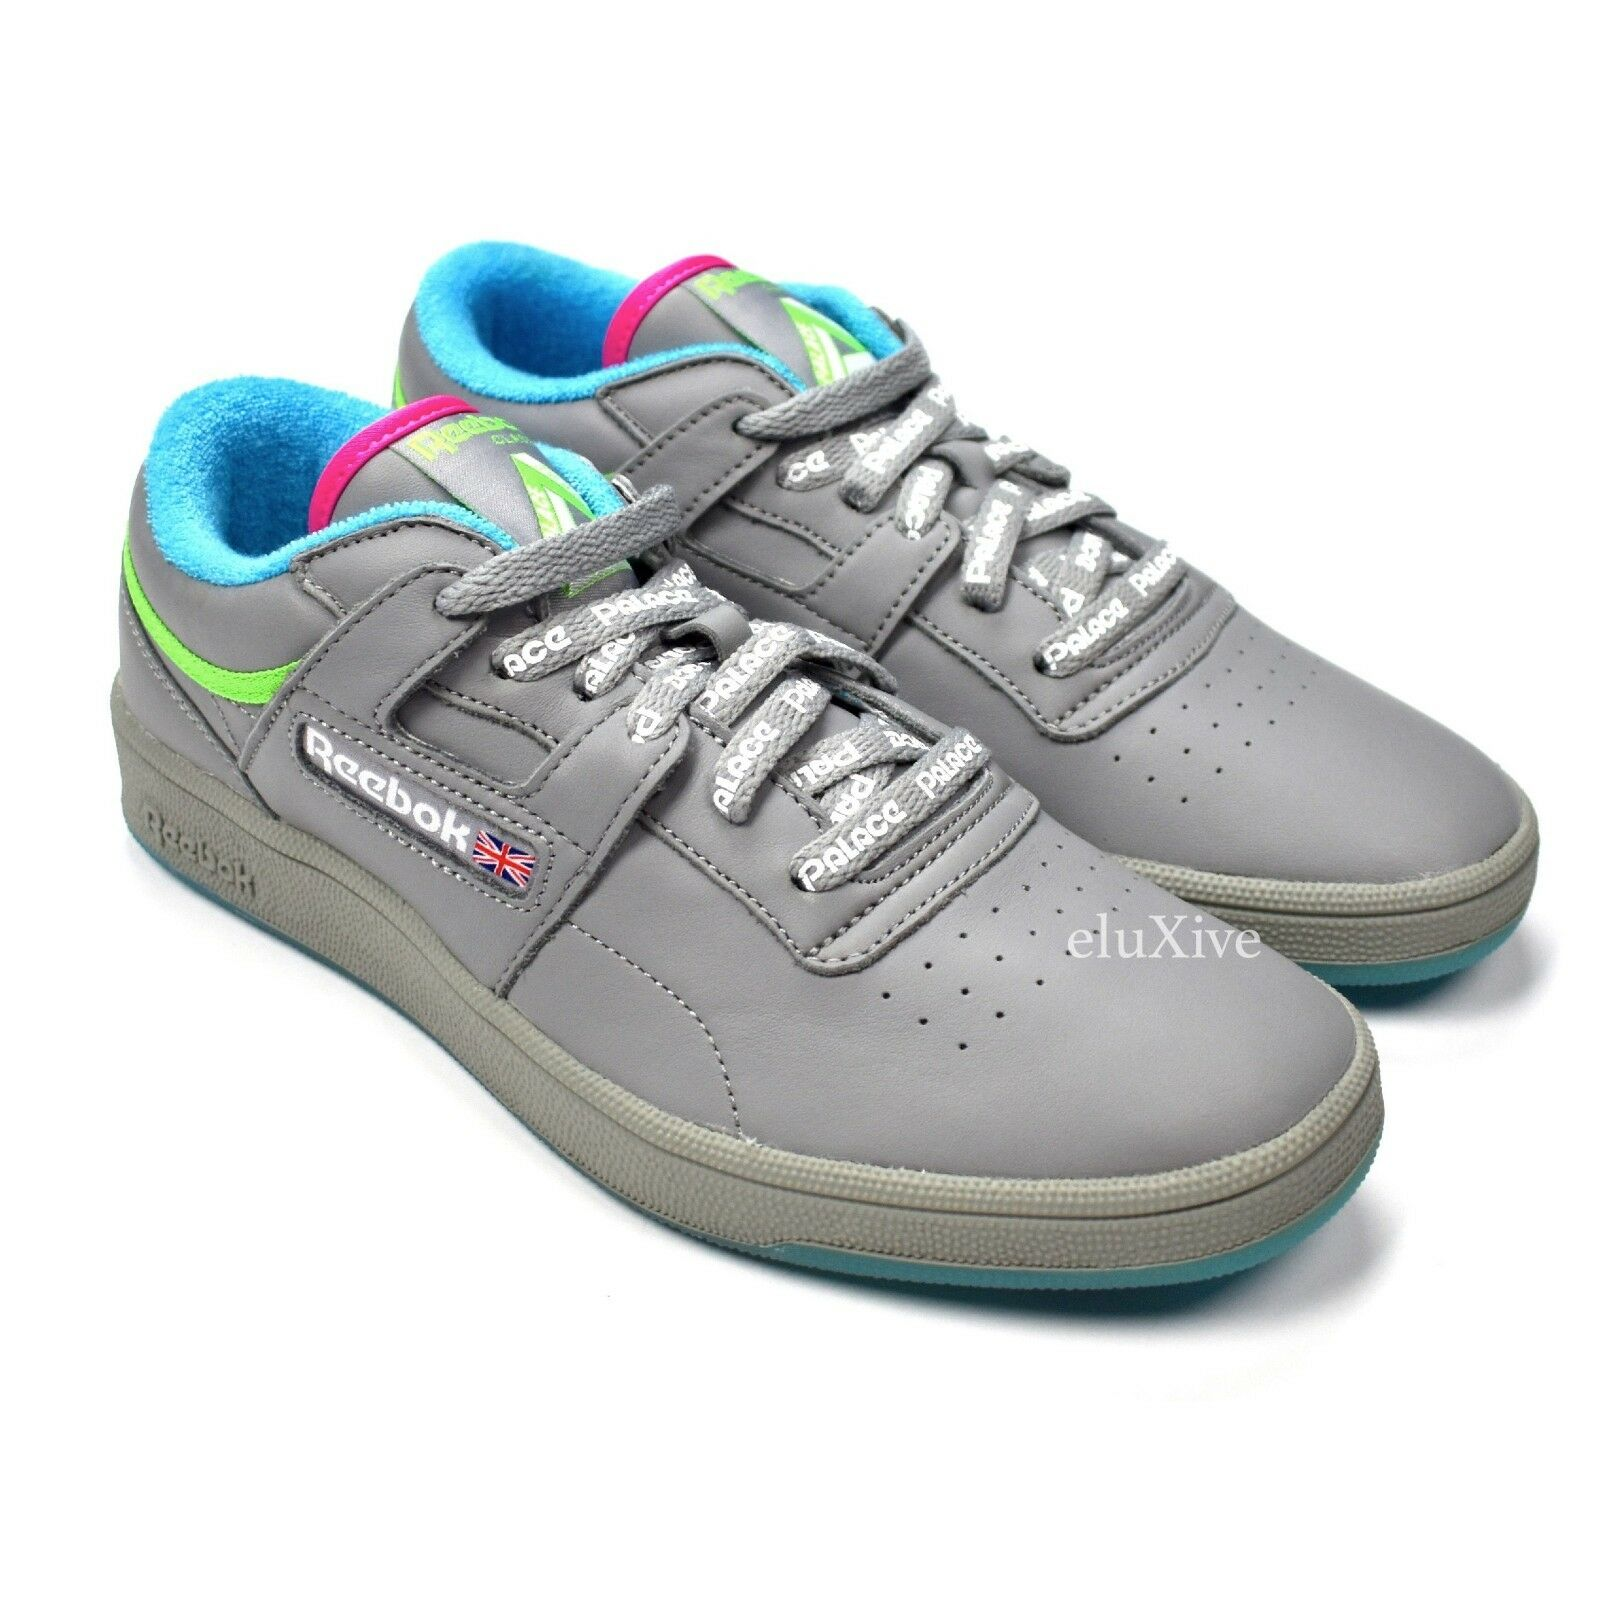 NWT Palace x Reebok Mens Club Workout Gray Leather Sneakers SS18 7.5 9 AUTHENTIC